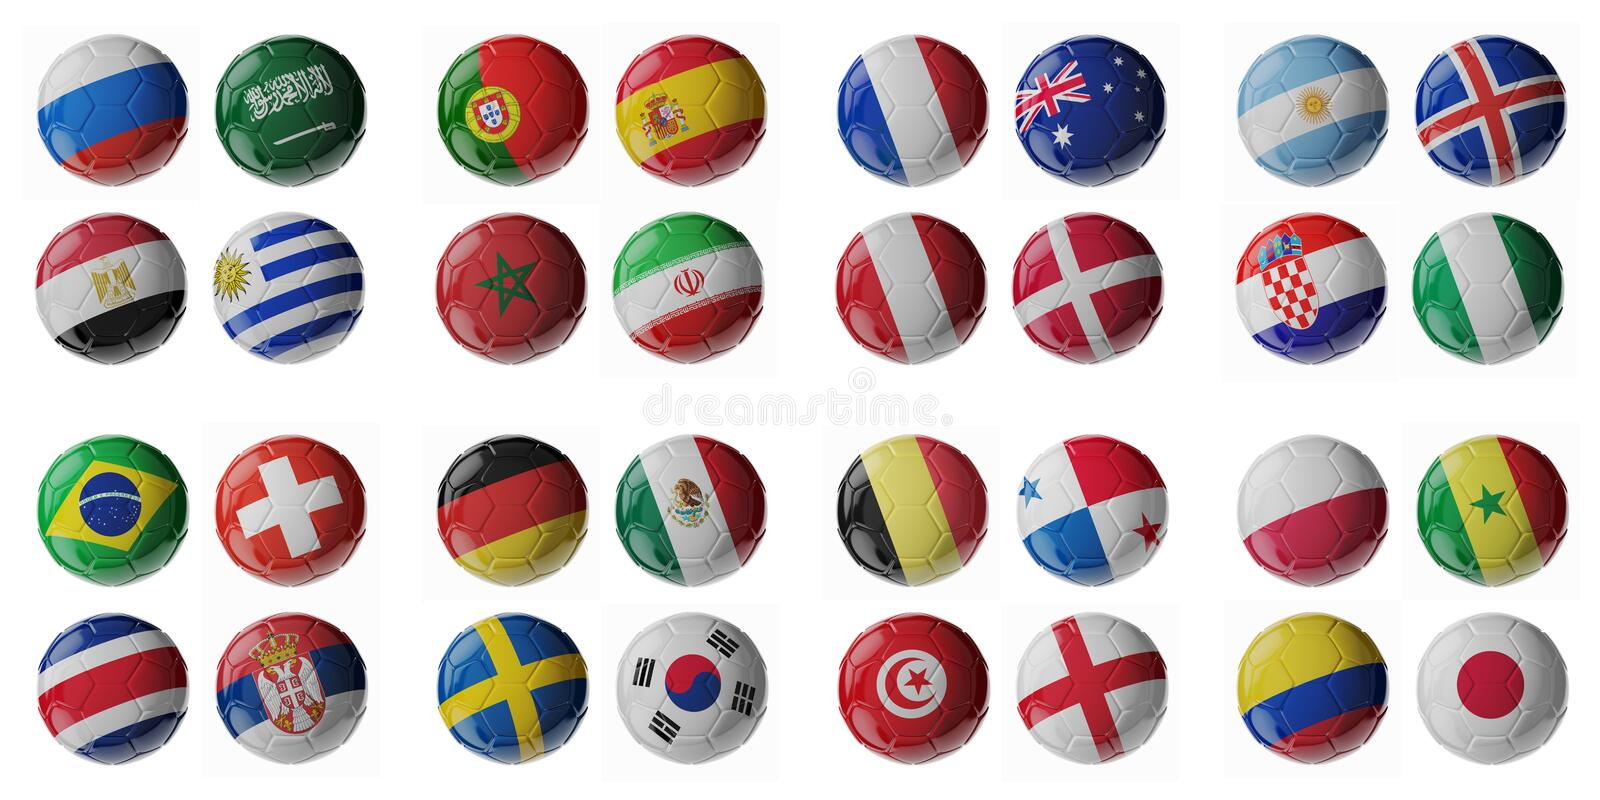 Championnat 2018 du football Le football/ballons de football illustration de vecteur